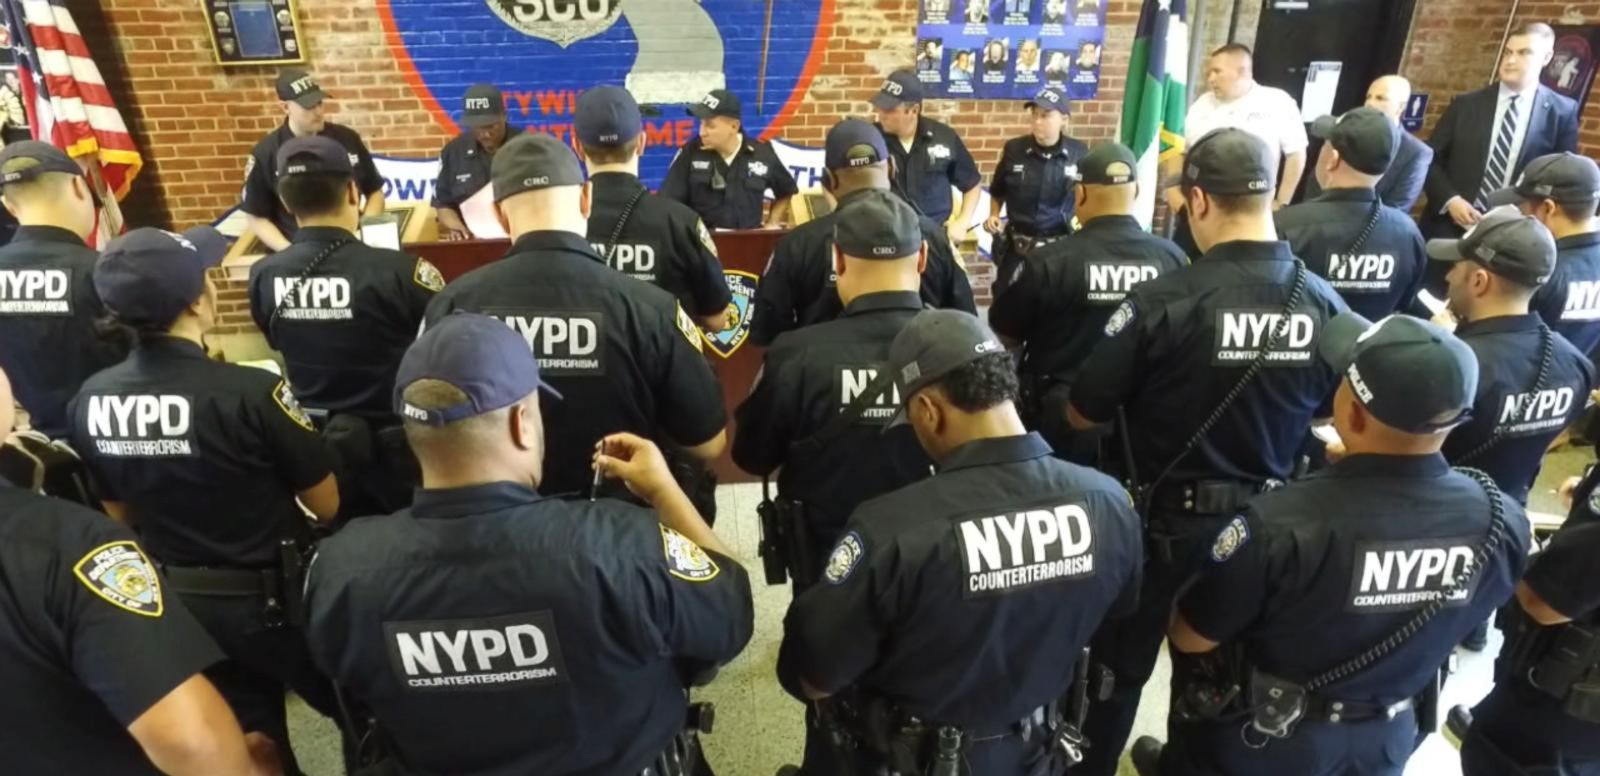 VIDEO: Inside the NYPD's Counterterror Squad